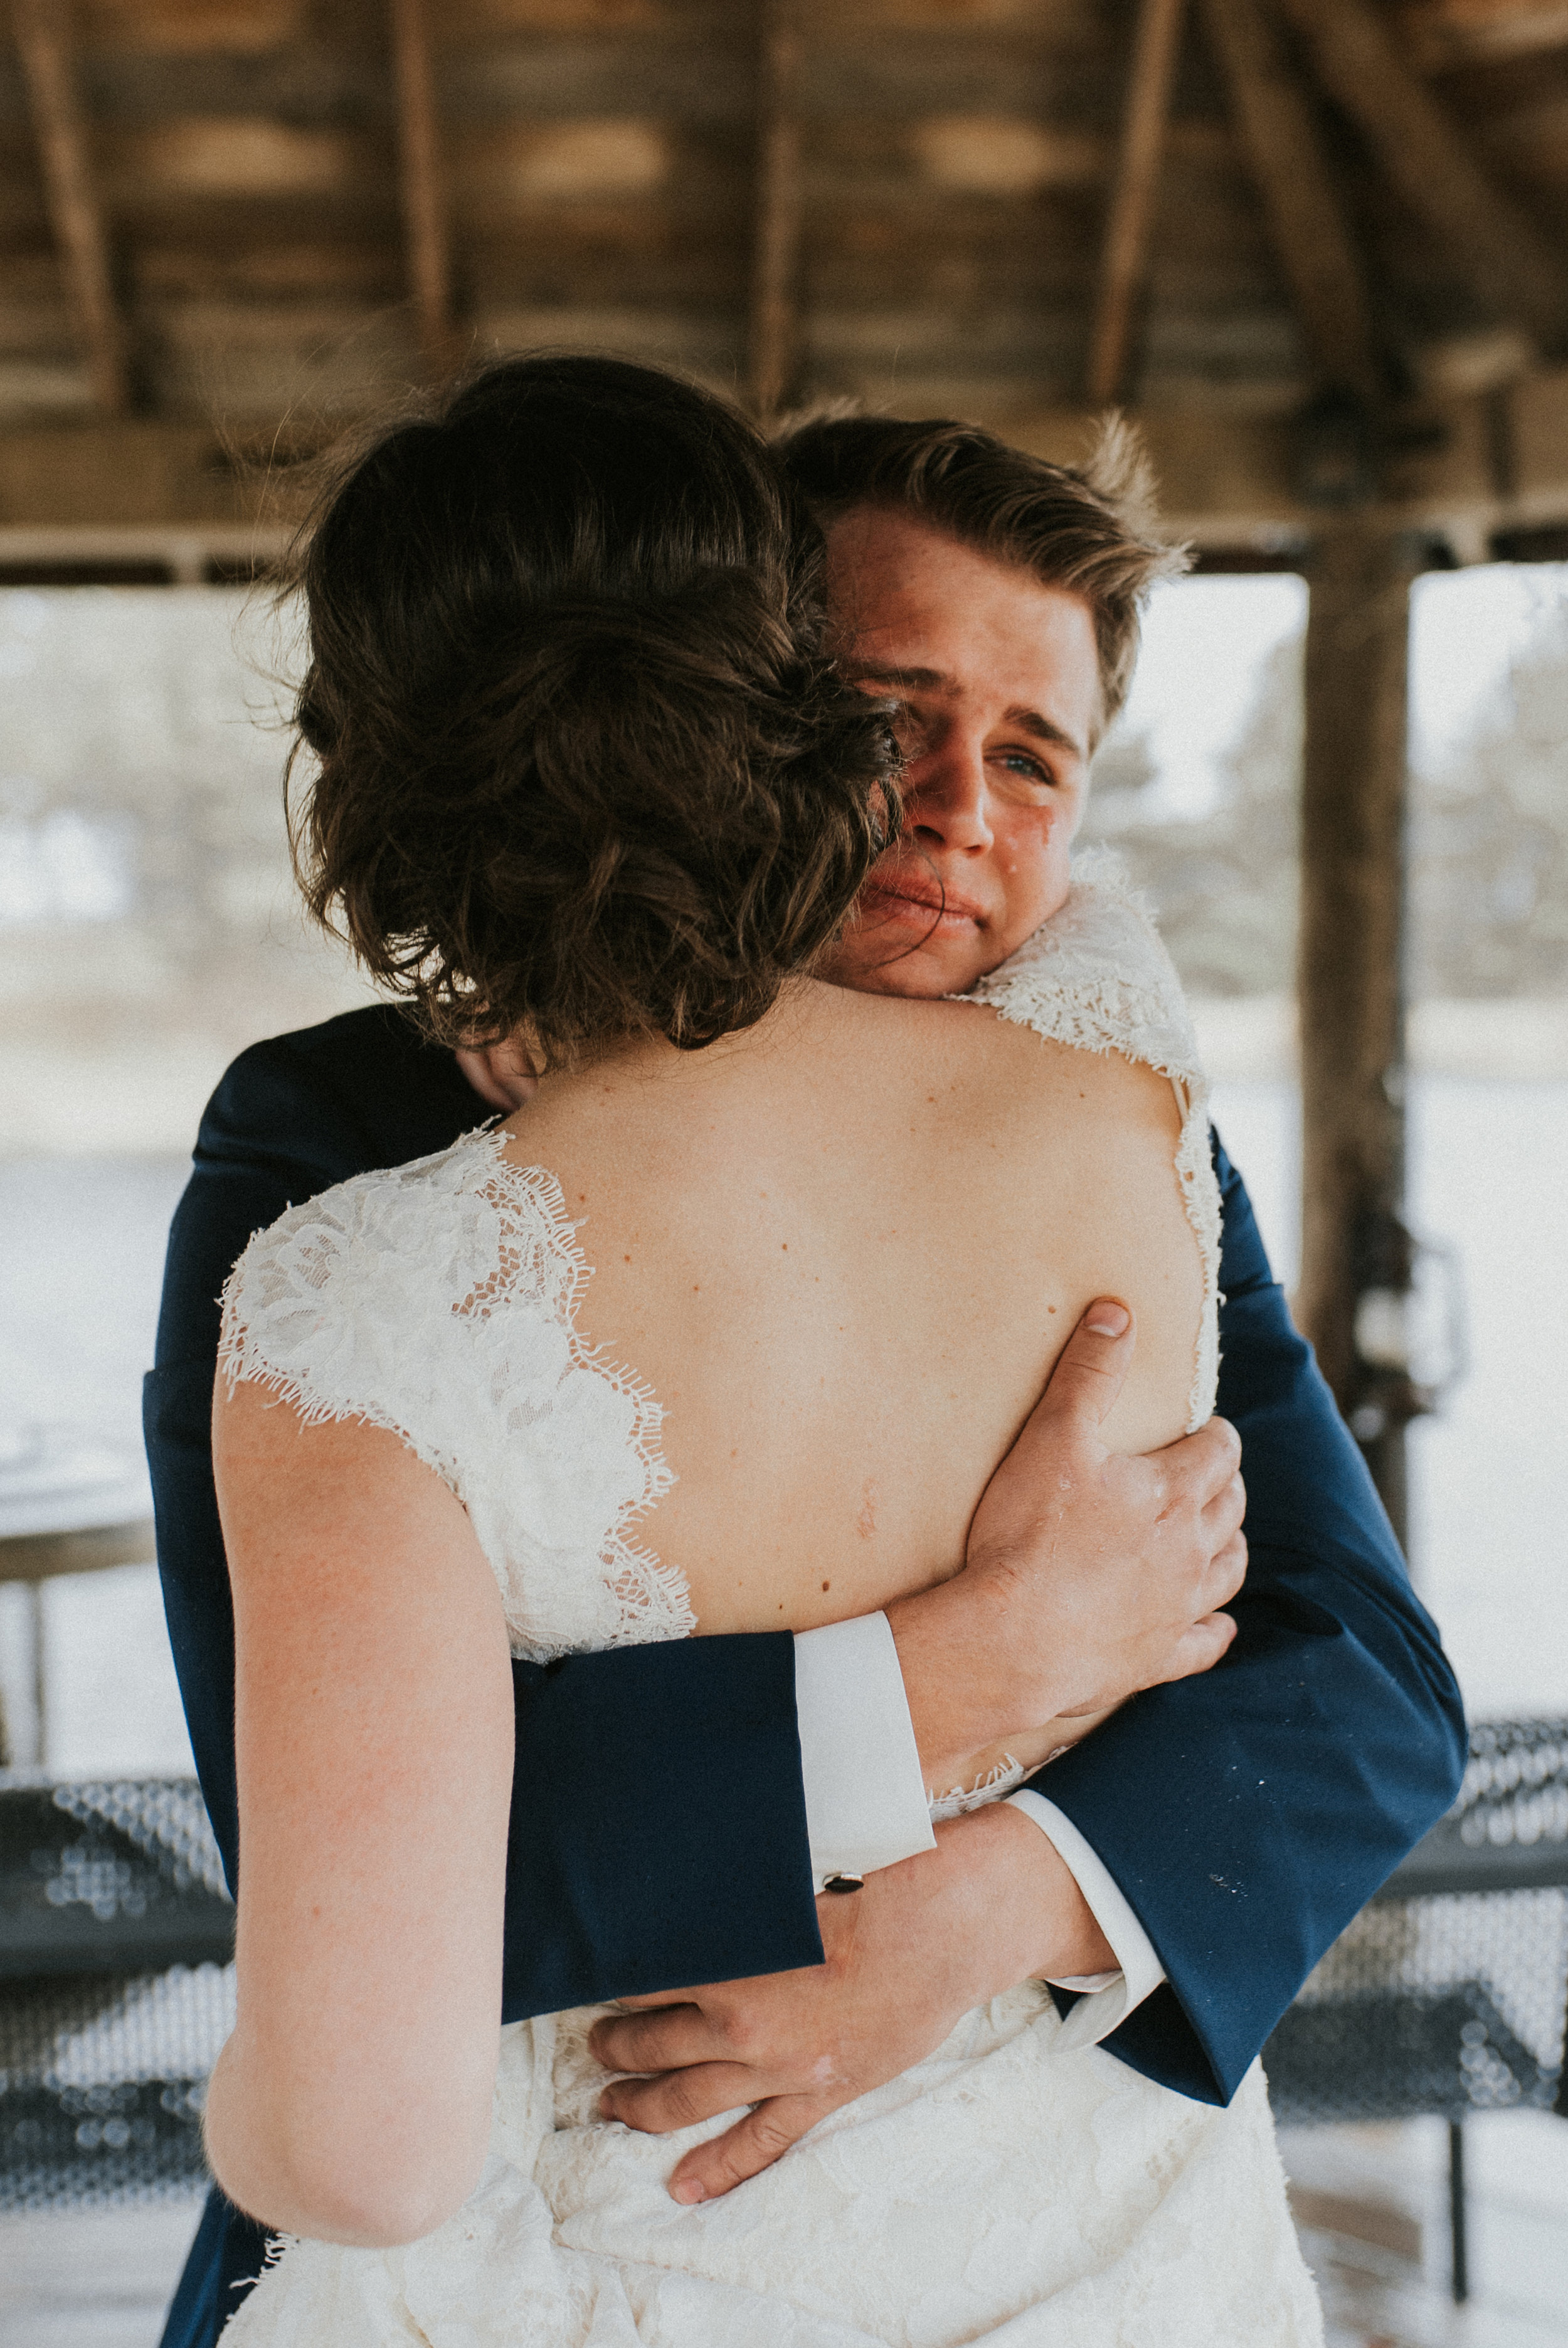 Emotional first look with groom crying and hugging bride - this was a rainy April wedding in West Branch, Iowa | Photo by Marissa Kelly Photography